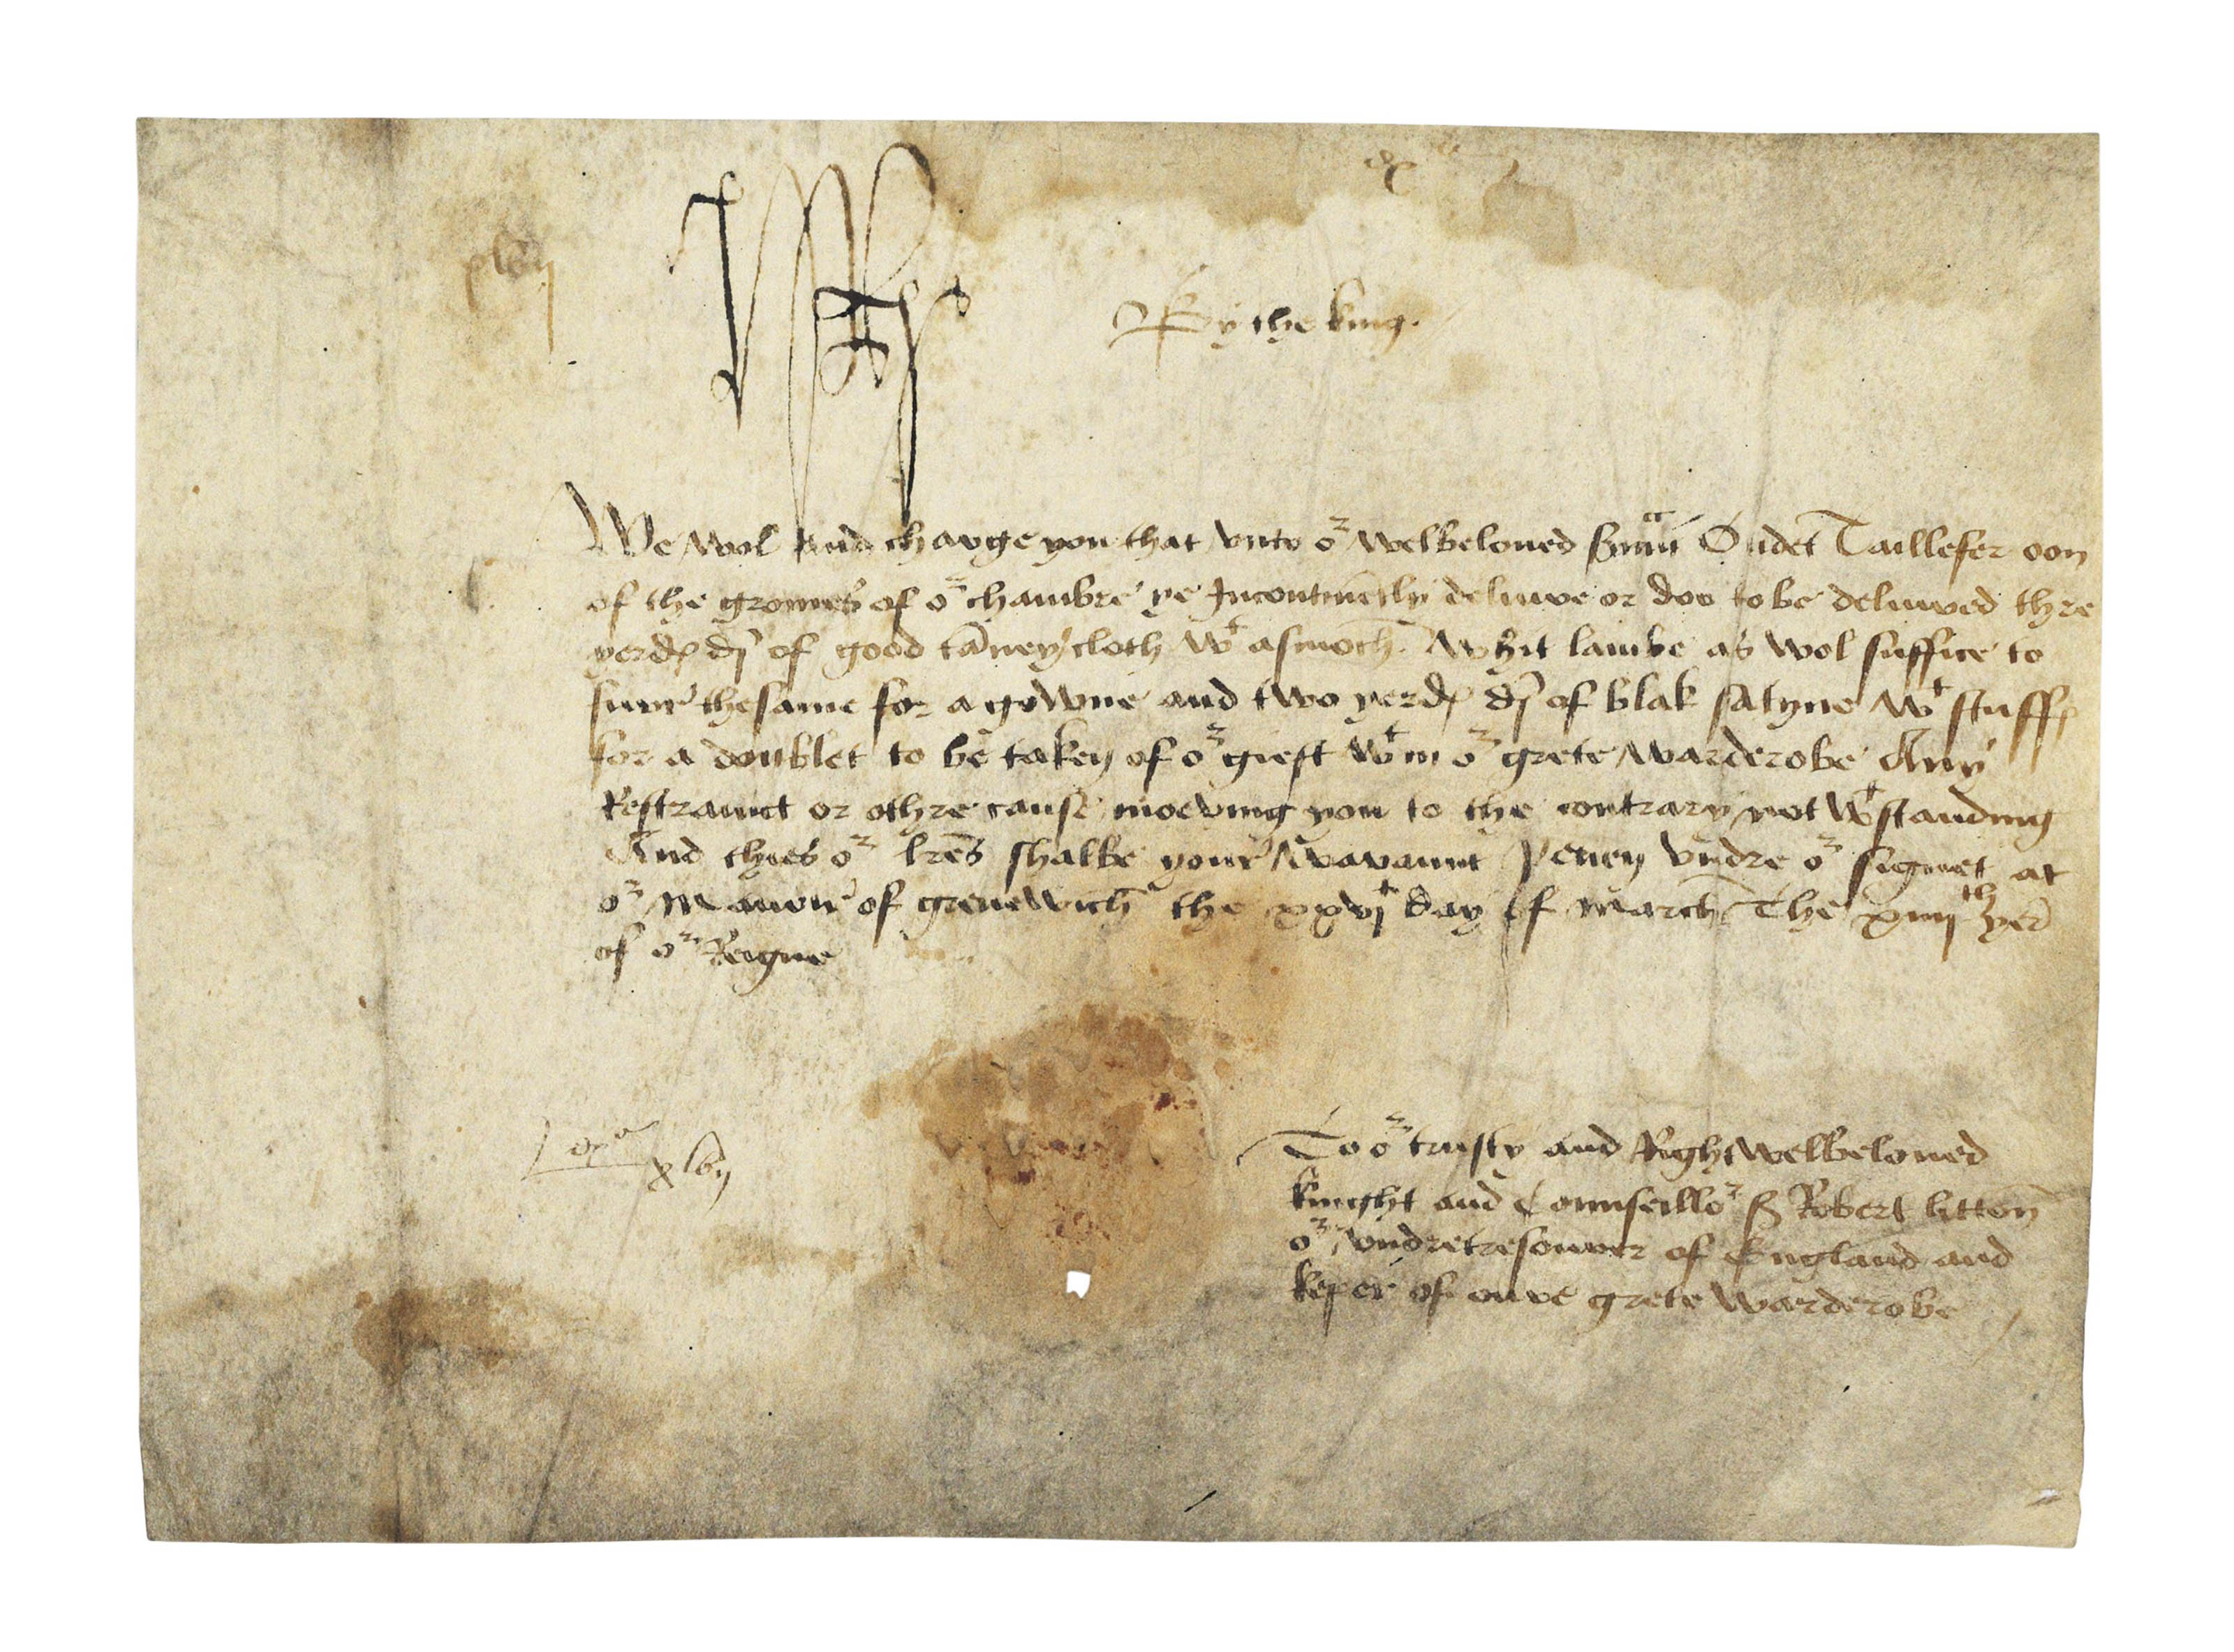 HENRY VII (1457-1509), king of England. Document signed ('H.R.'), Greenwich, 26 March 1498, letters patent to Sir Robert Lytton, 'undertresourer of England and keper of oure grete Warderobe', his warrant for delivering to Oudet Taillefer, a groom of the chamber, 'thre[e] yerds of good ta[w]ney cloth w[i]t[h] asmoch whit lambe as wol suffice to furre the same for a gowne and two yerds  of blak satyne w[i]t[h] stuffe for a doublet to be taken of o[u]r giest [?chest] w[i]t[h]in o[u]r grete Warderobe', in English, on vellum, 9 lines on one membrane, 135 x 185mm (somewhat stained and soiled, lacking seal).